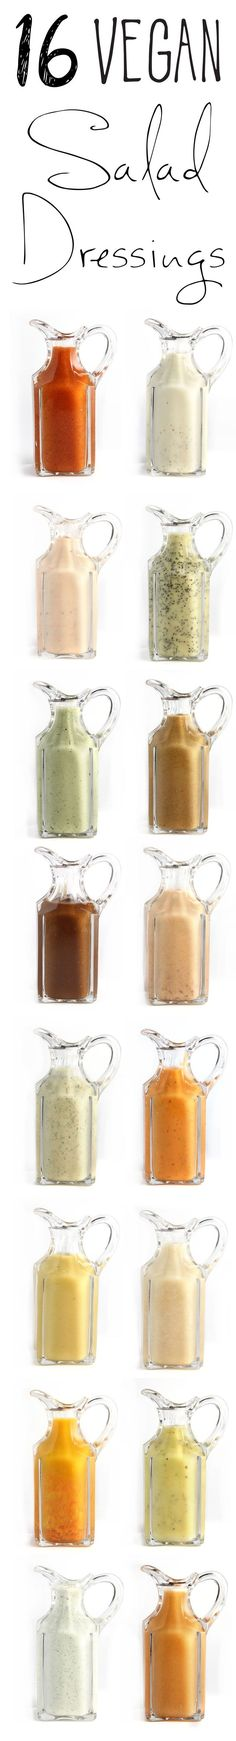 16 Vegan Salad Dressings!! All the classics made vegan, plus a few more great ideas.